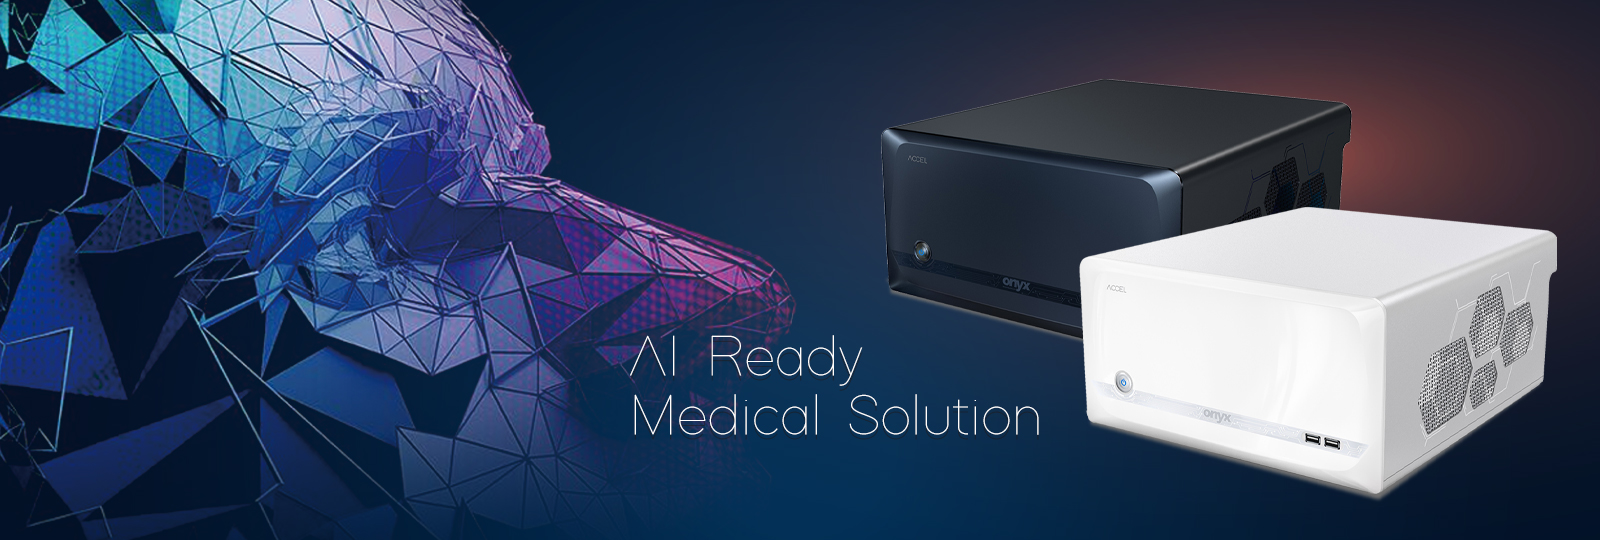 AI Ready Medical Solution